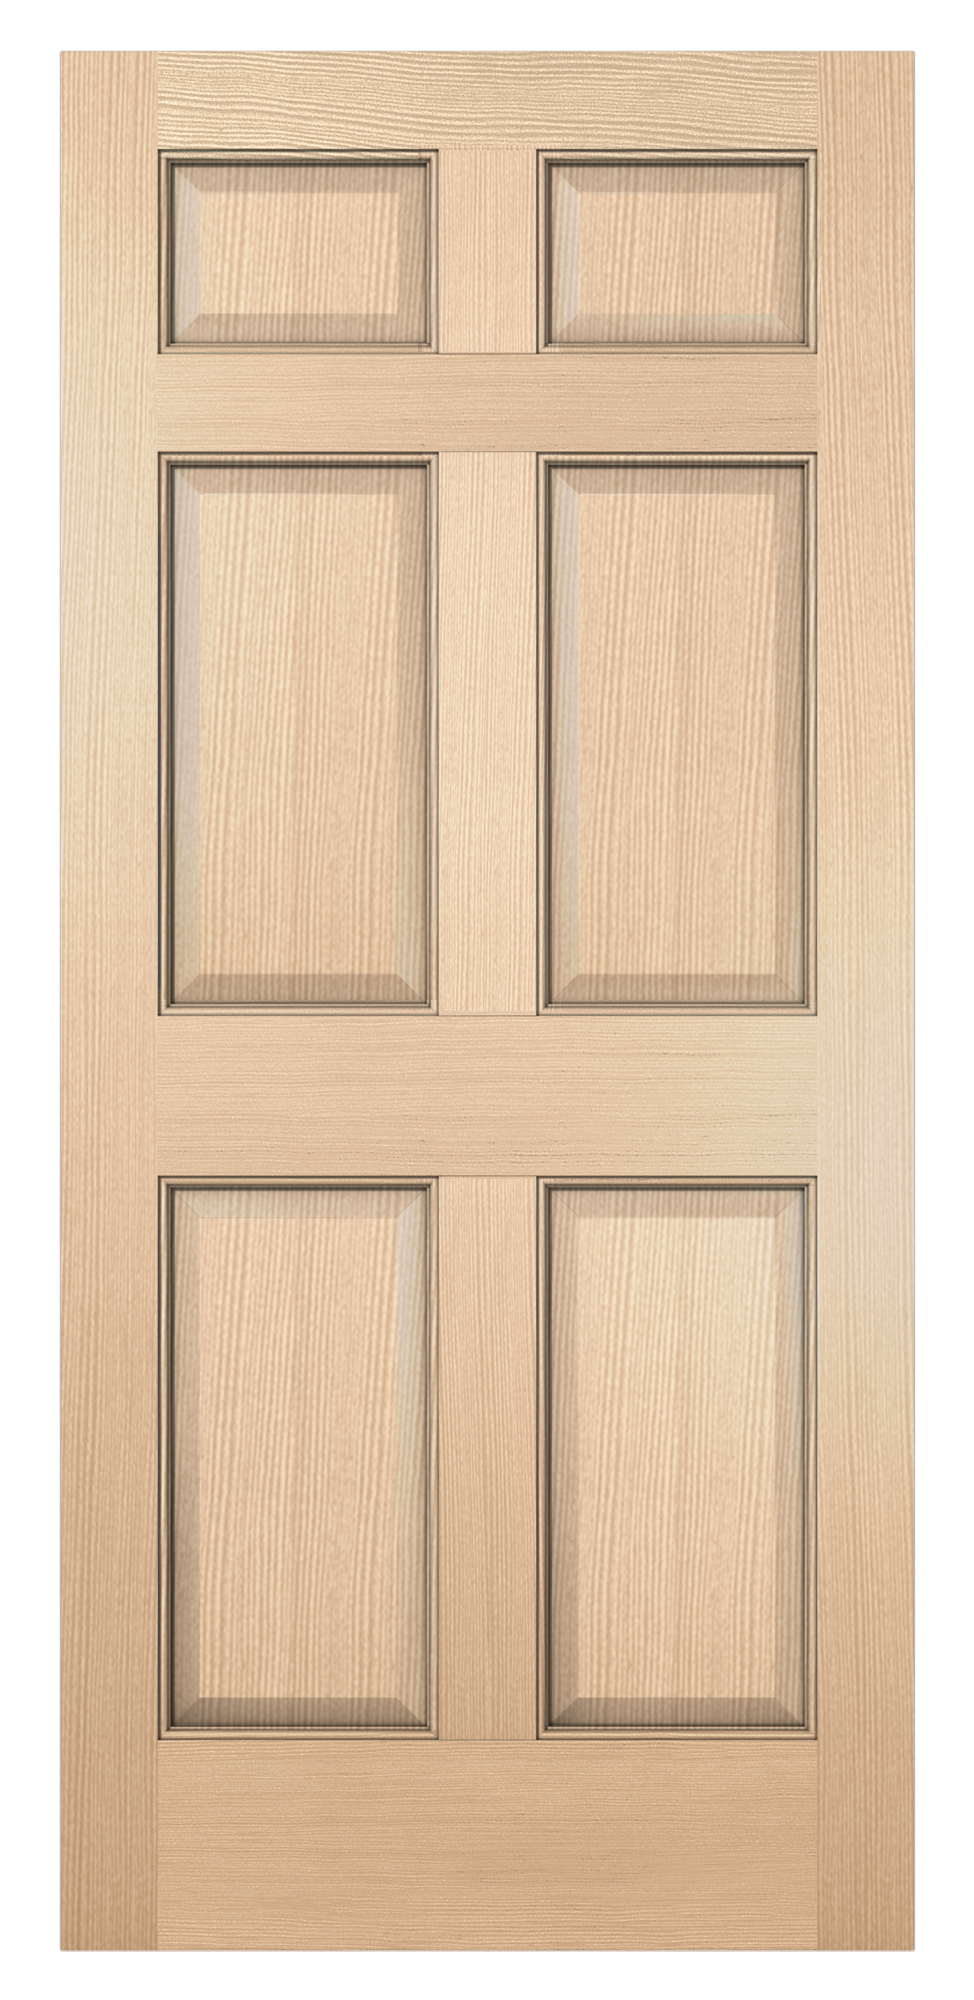 sc 1 st  Jeld-Wen & Authentic Wood All Panel Exterior Door | JELD-WEN Windows u0026 Doors pezcame.com